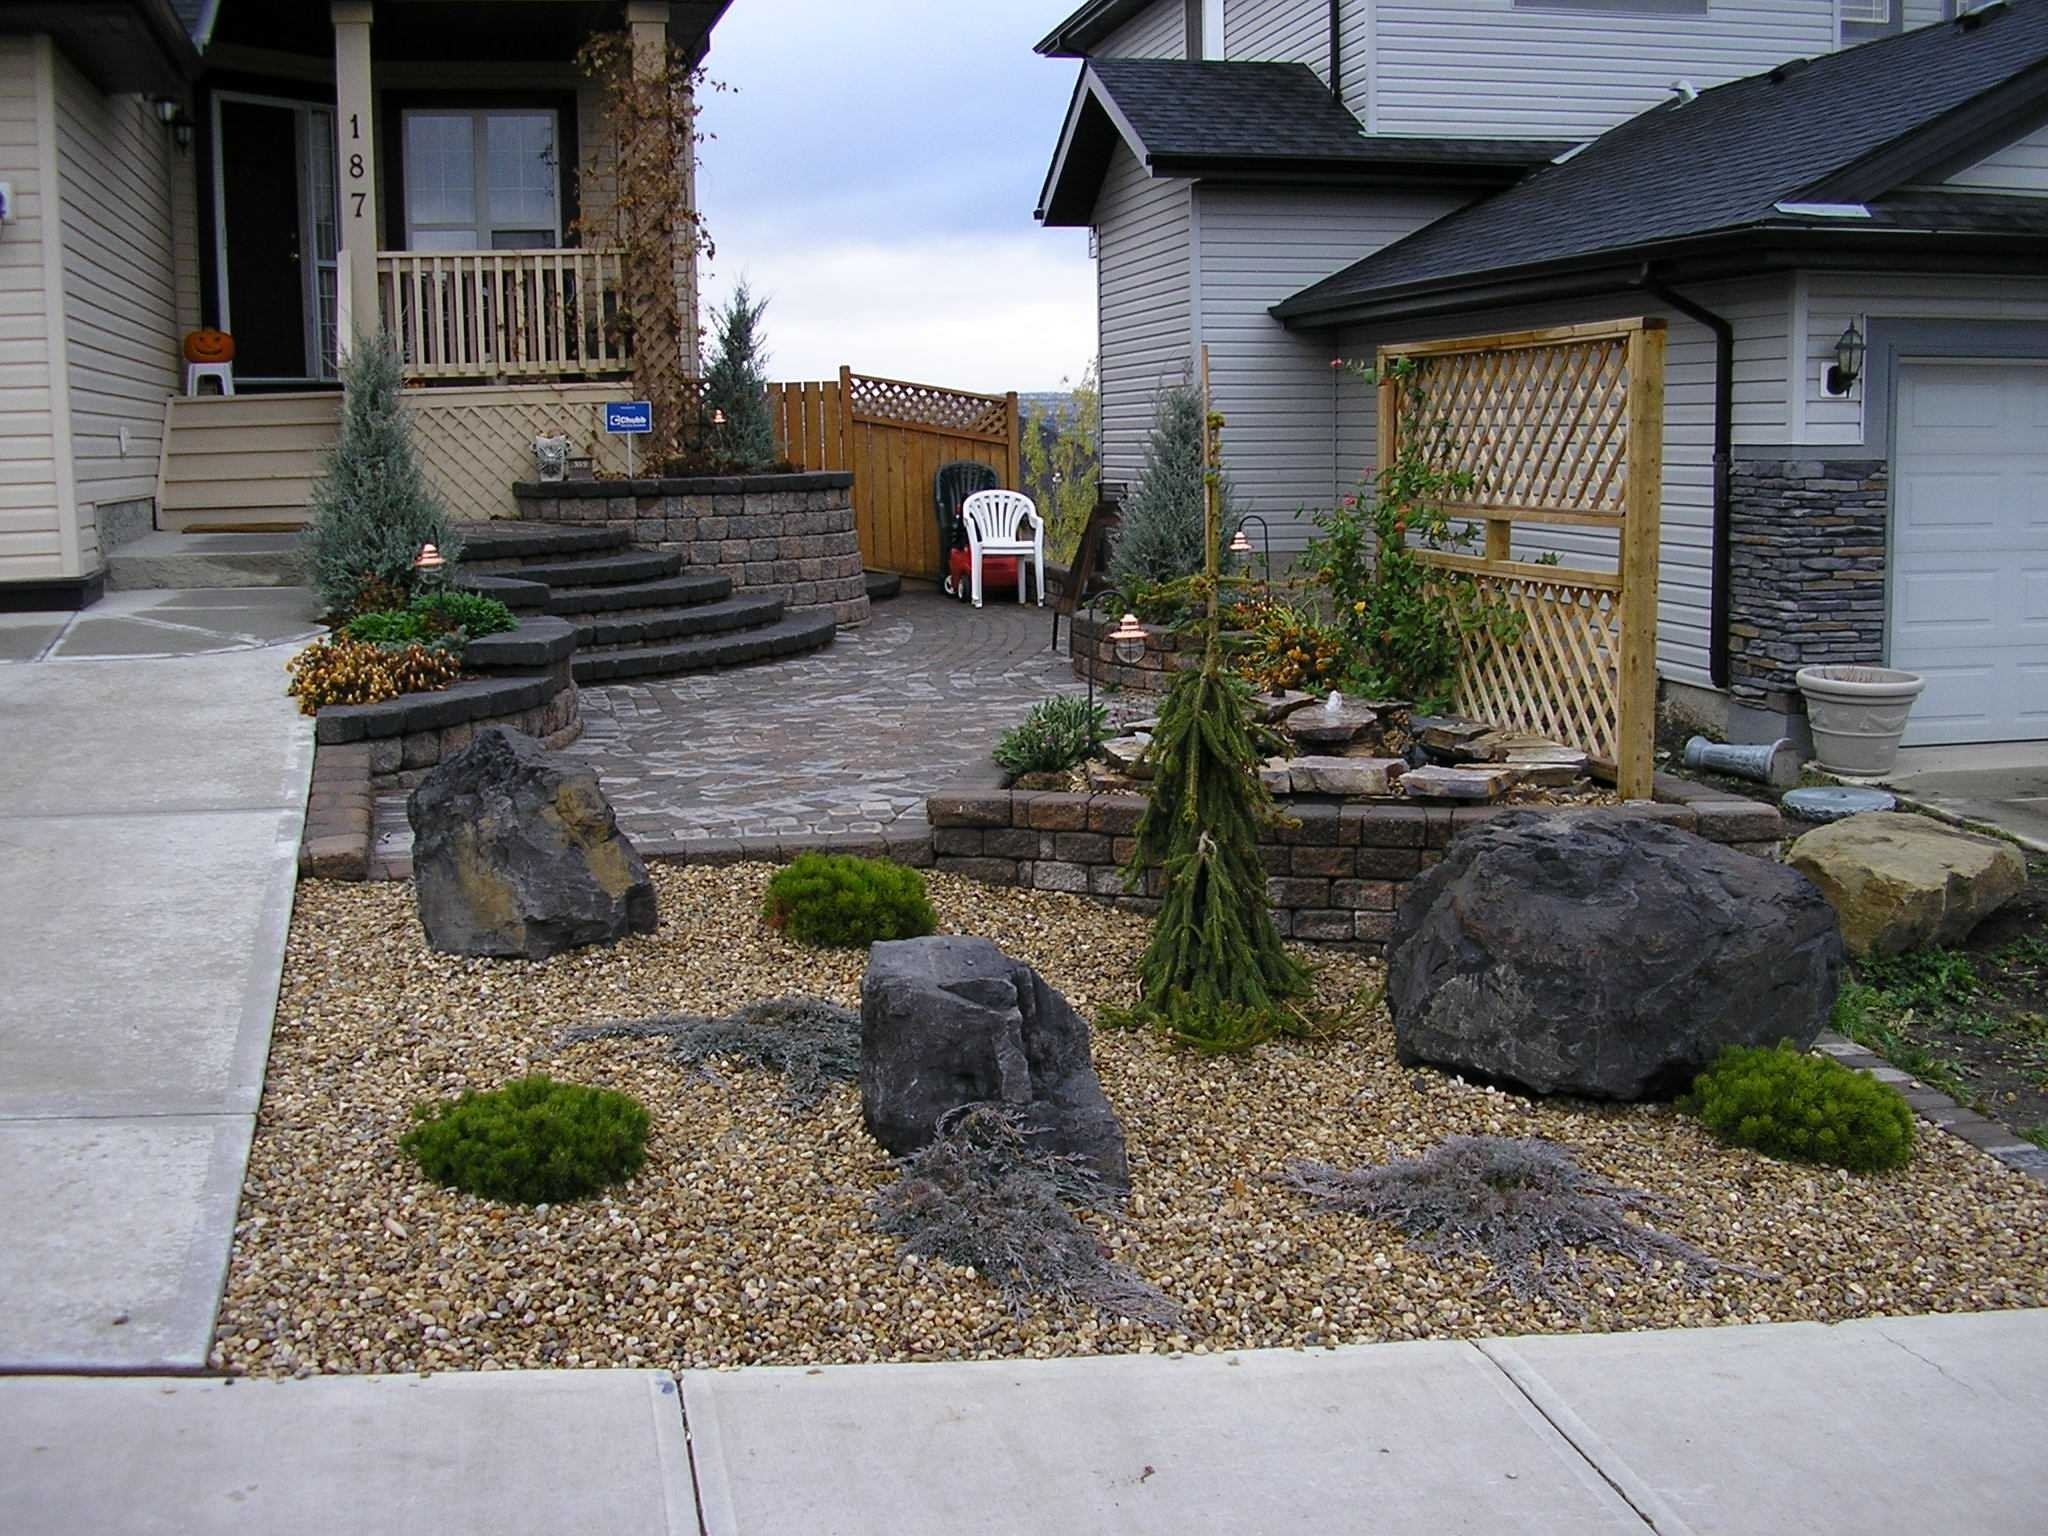 10 Perfect Rock Landscaping Ideas For Front Yard fabulous rock landscaping ideas for front yard with images pictures 2020